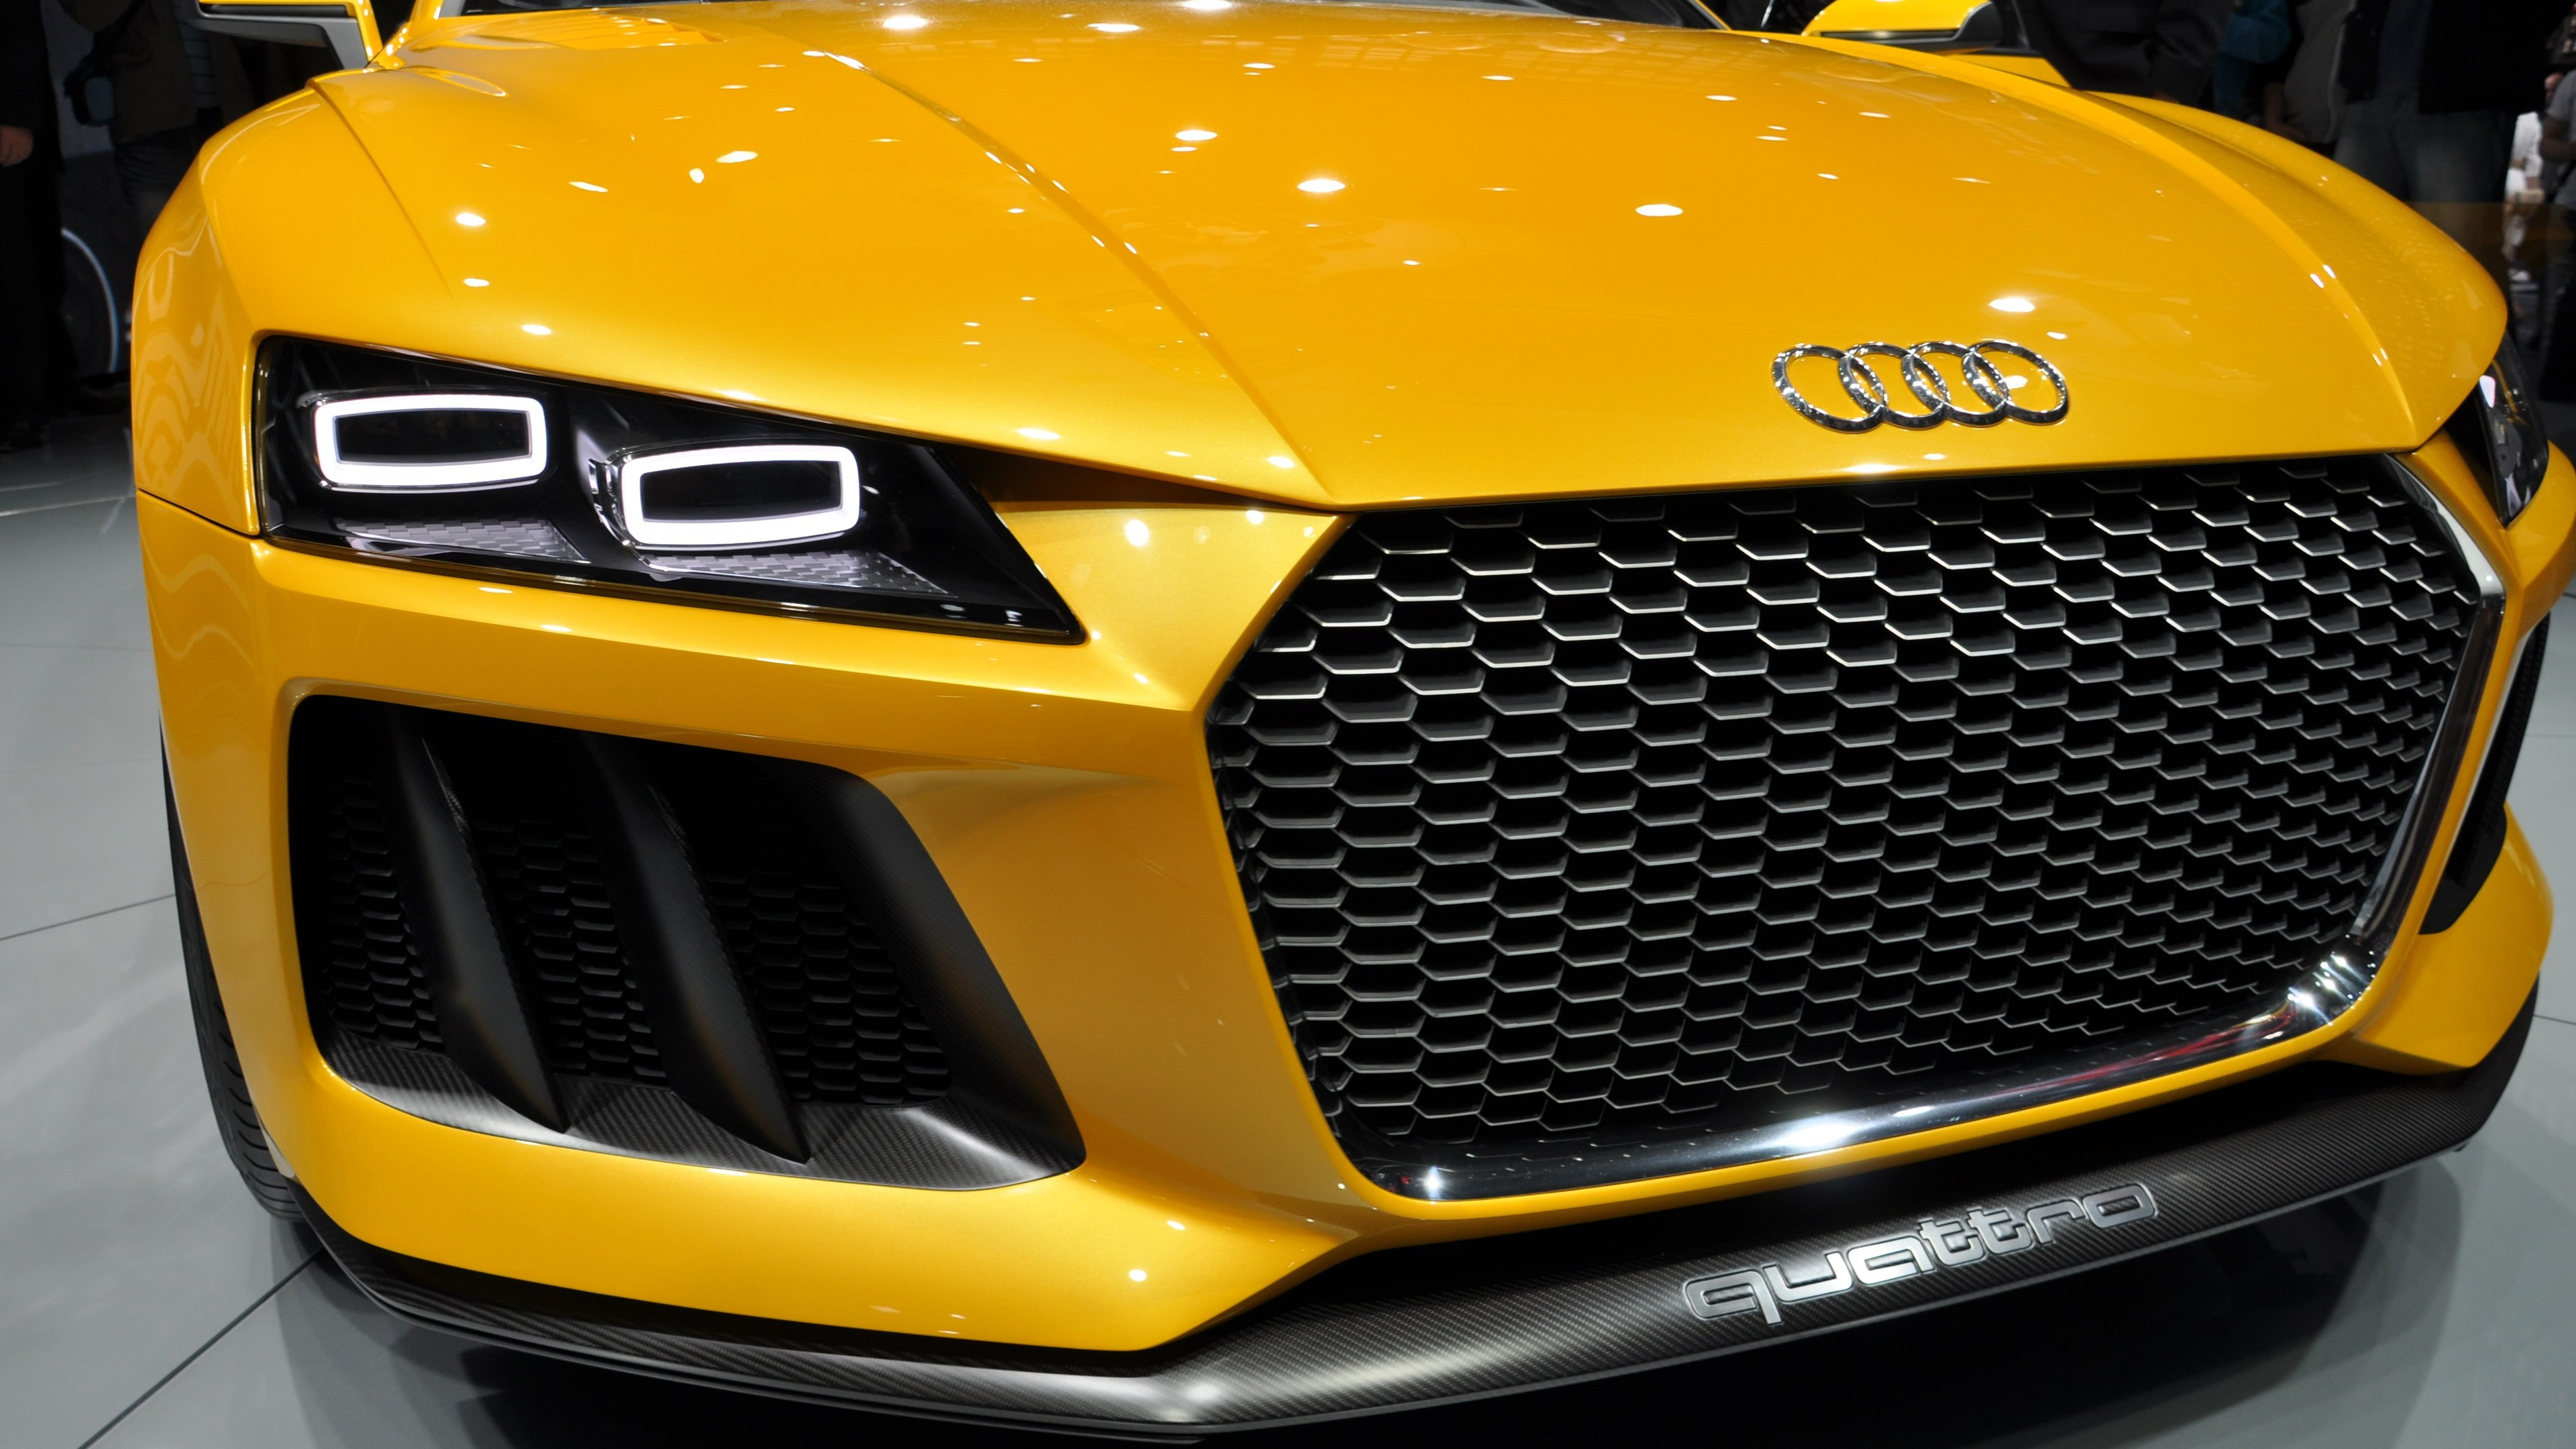 2017 audi matrix led 1539104510 - 2017 Audi Matrix LED - yellow wallpapers, lights wallpapers, cars wallpapers, audi wallpapers